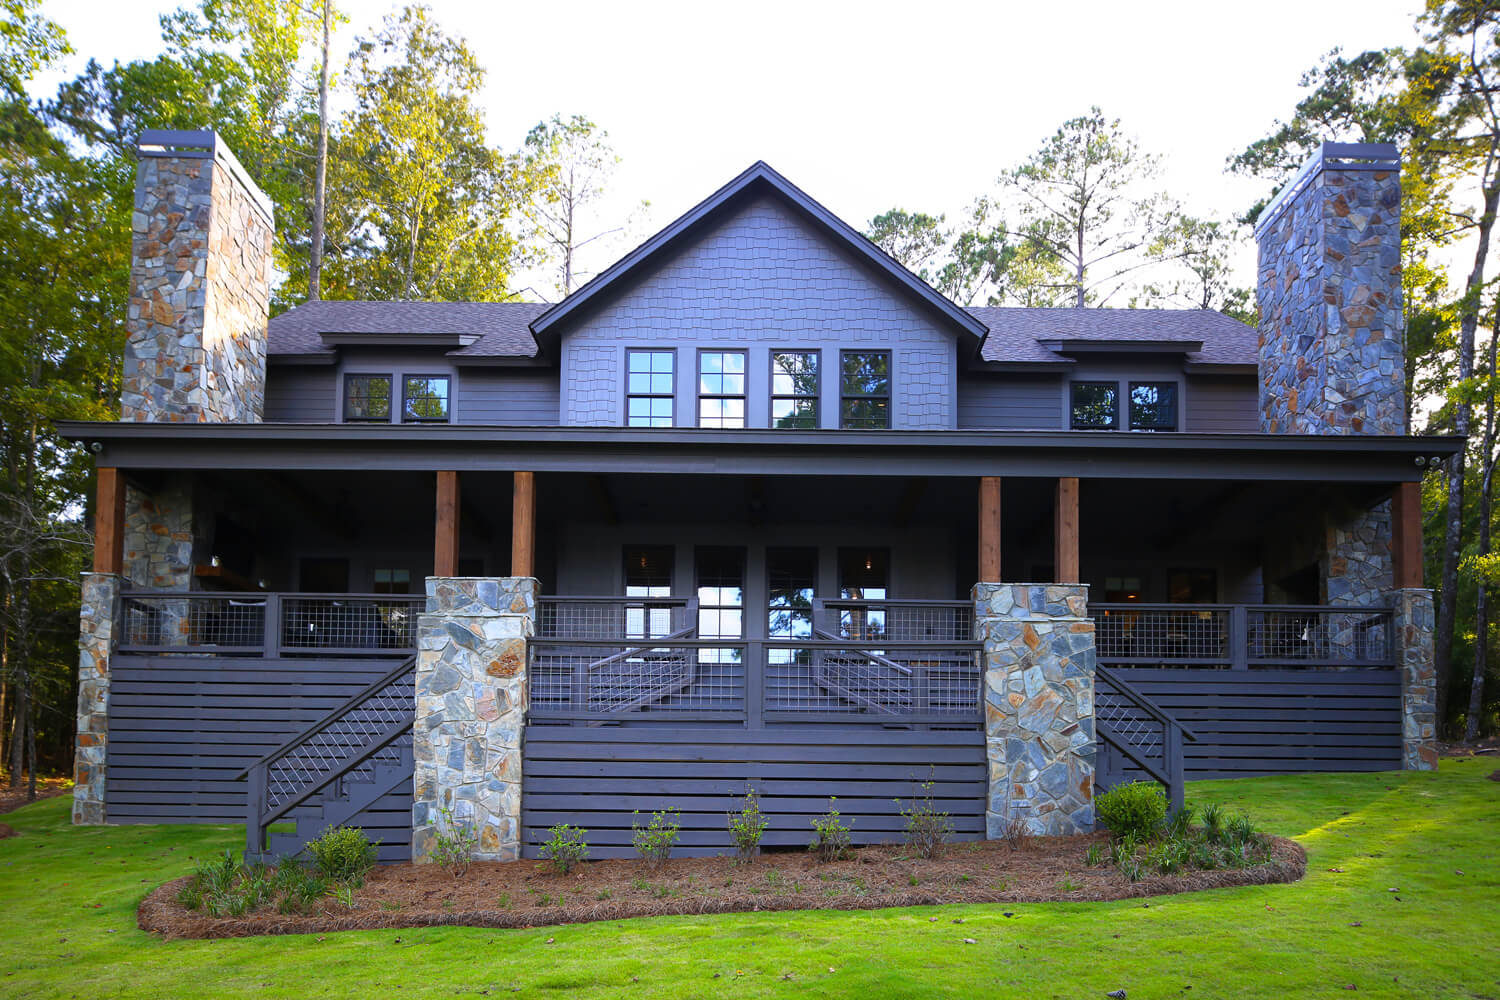 Lake Martin Cabin - Front Elevation - Designed by Foshee Architecture